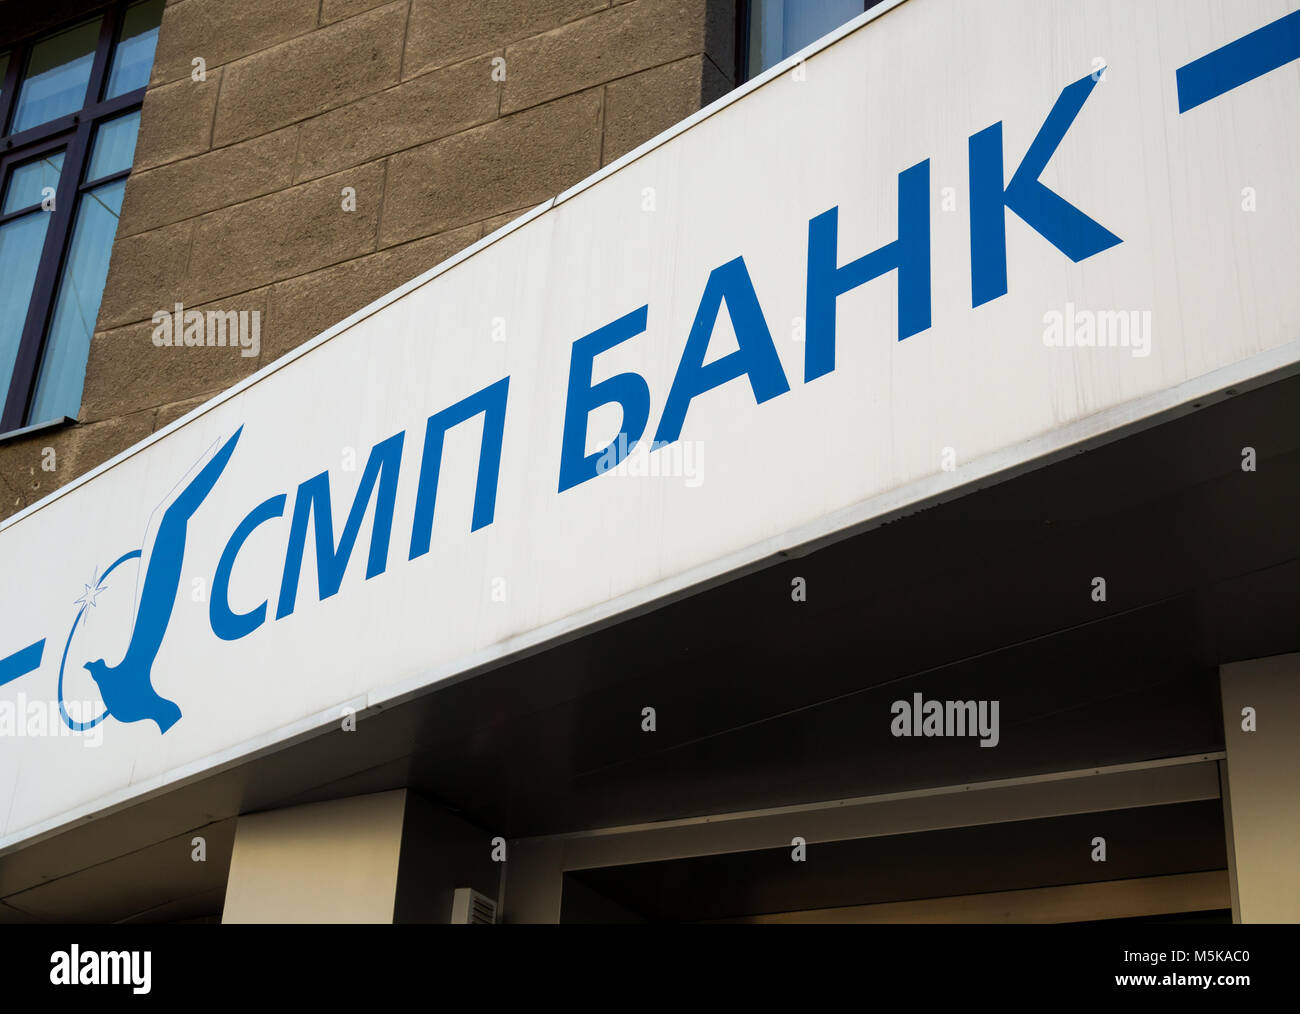 Who sells in Voronezh letters on the facade 11